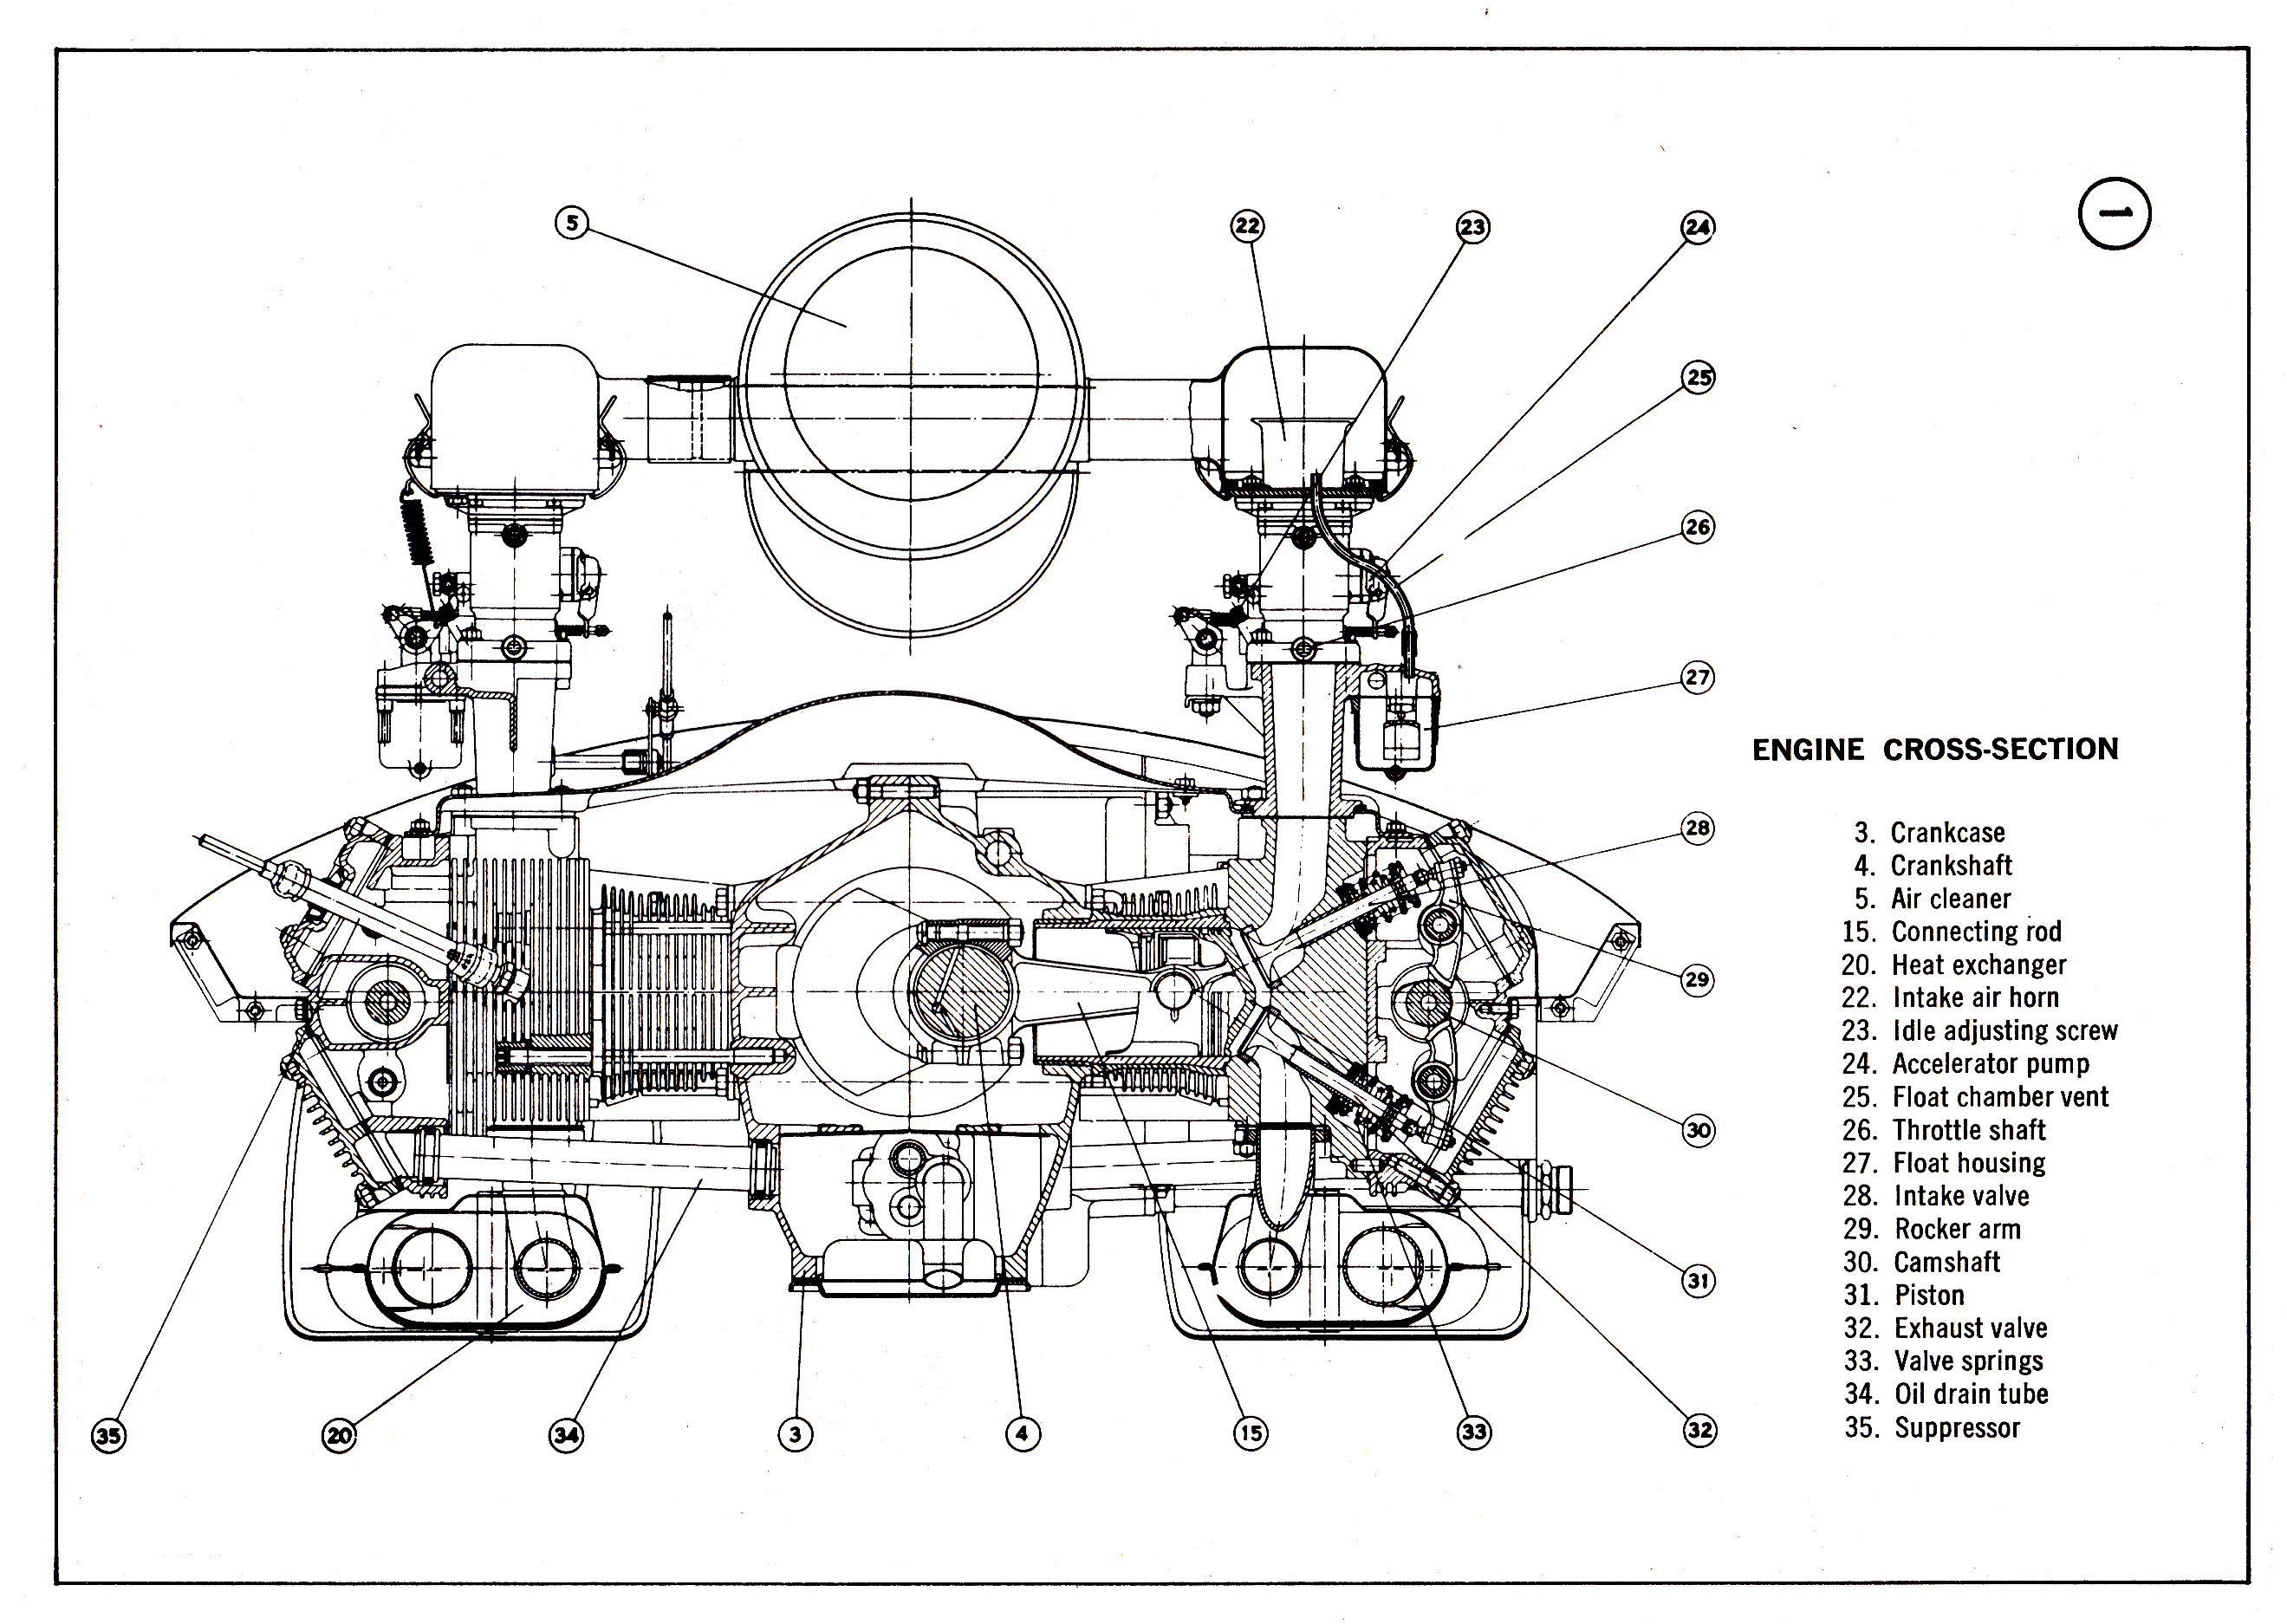 Porsche 944 Engine Cross Section Porsche Free Engine